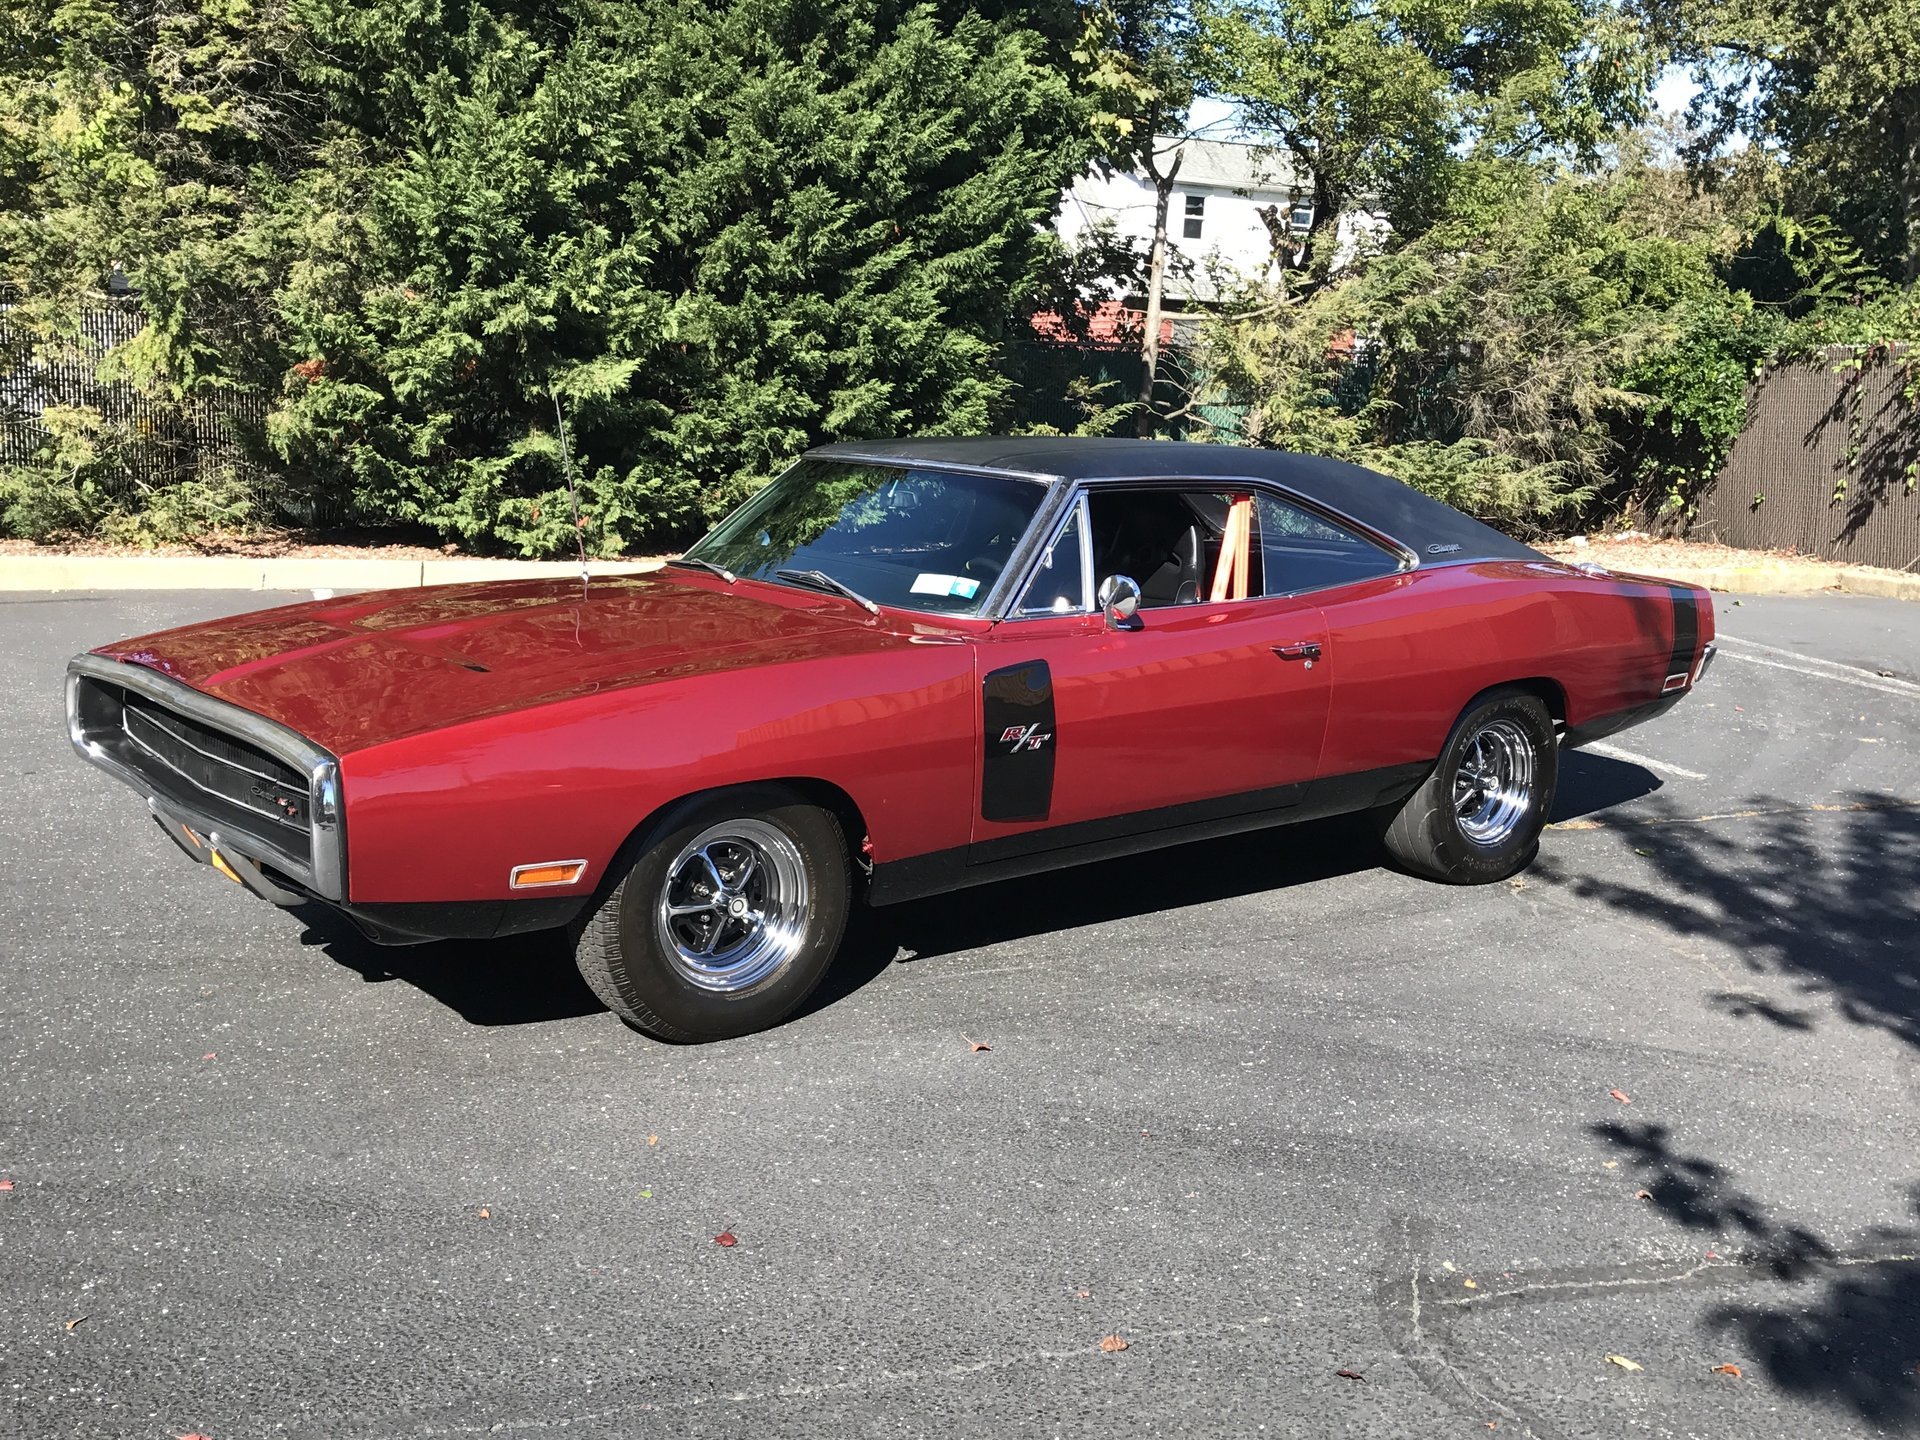 1970 dodge charger for sale 68513 mcg. Black Bedroom Furniture Sets. Home Design Ideas